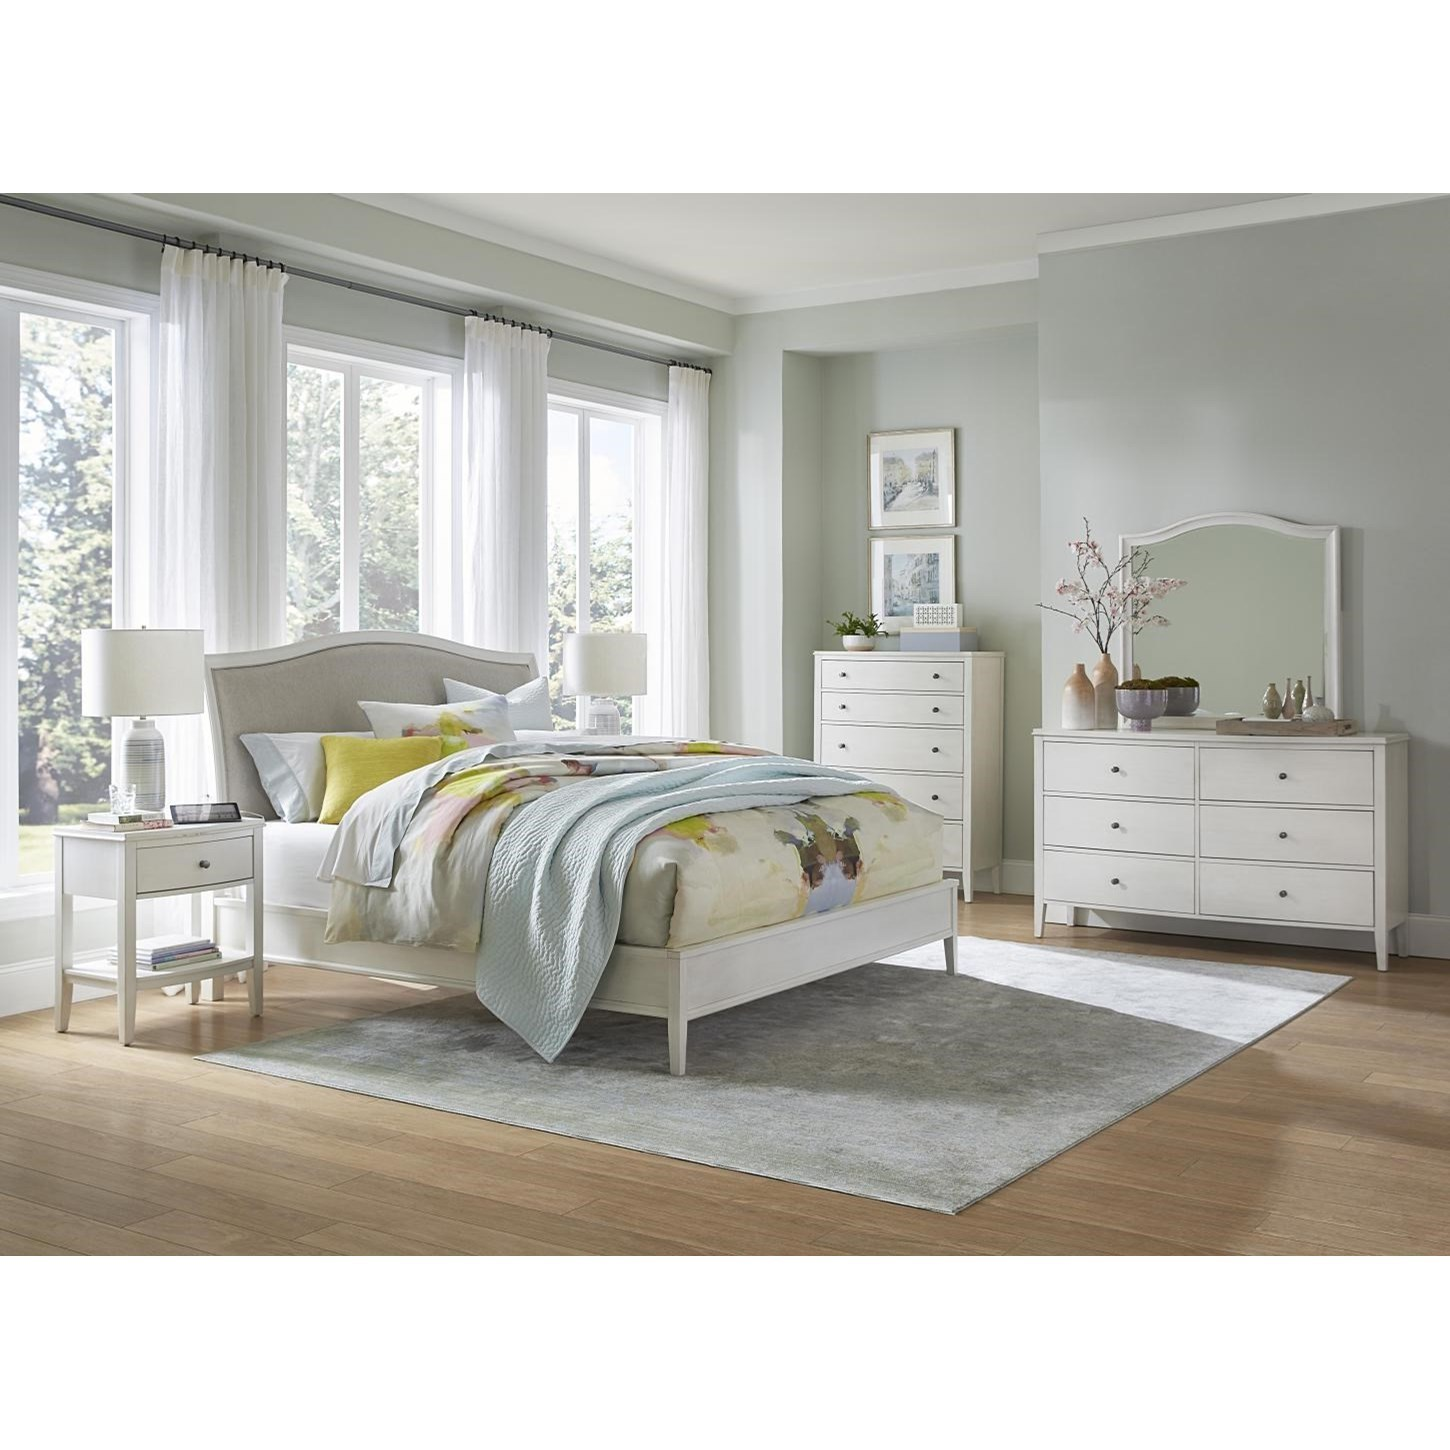 Charlotte  King Bedroom Group  by Aspenhome at Stoney Creek Furniture